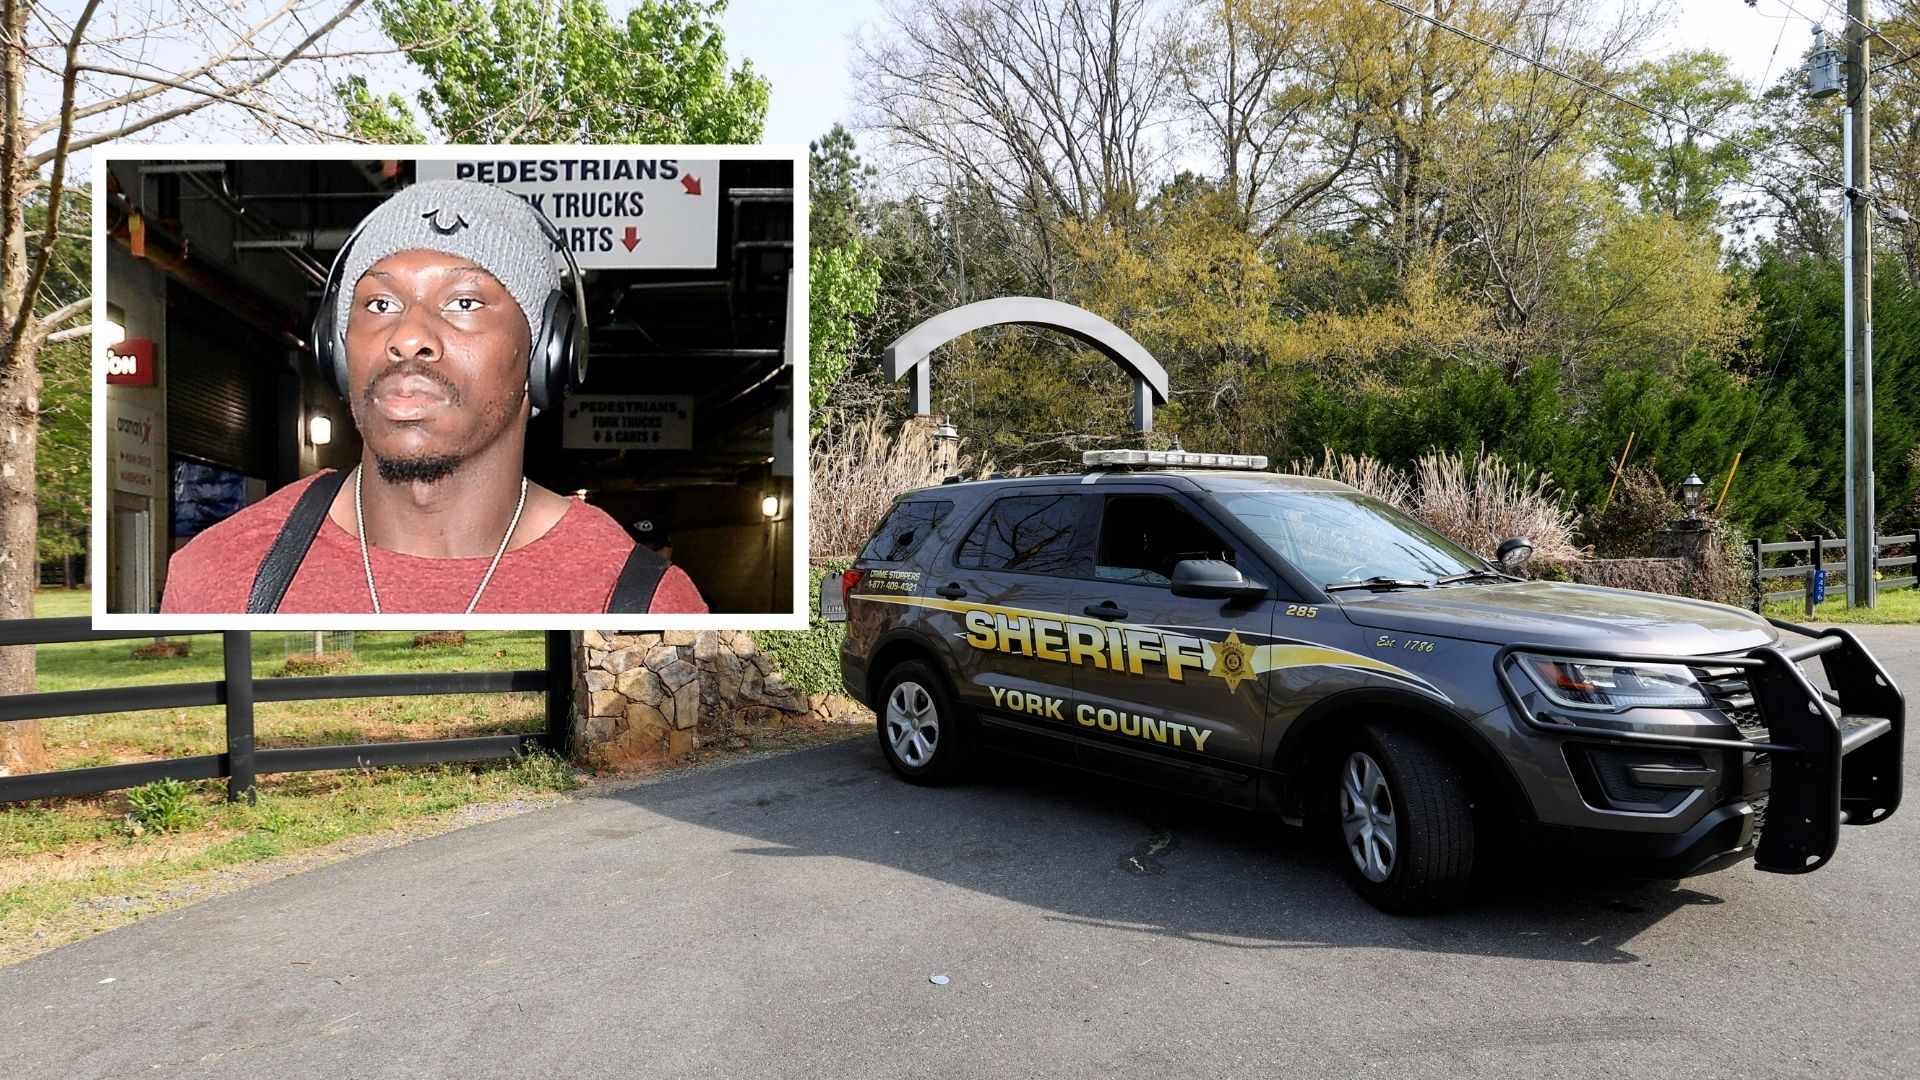 A York County sheriff's deputy parked outside a residence where five people were fatally shot on Thursday, April 8, 2021, in Rock Hill, South Carolina; Inset: Former NFL player Phillip Adams, the accused gunman who then turned the gun on himself, AP reports. (Nell Redmond/Mark Zaleski/AP Photo)